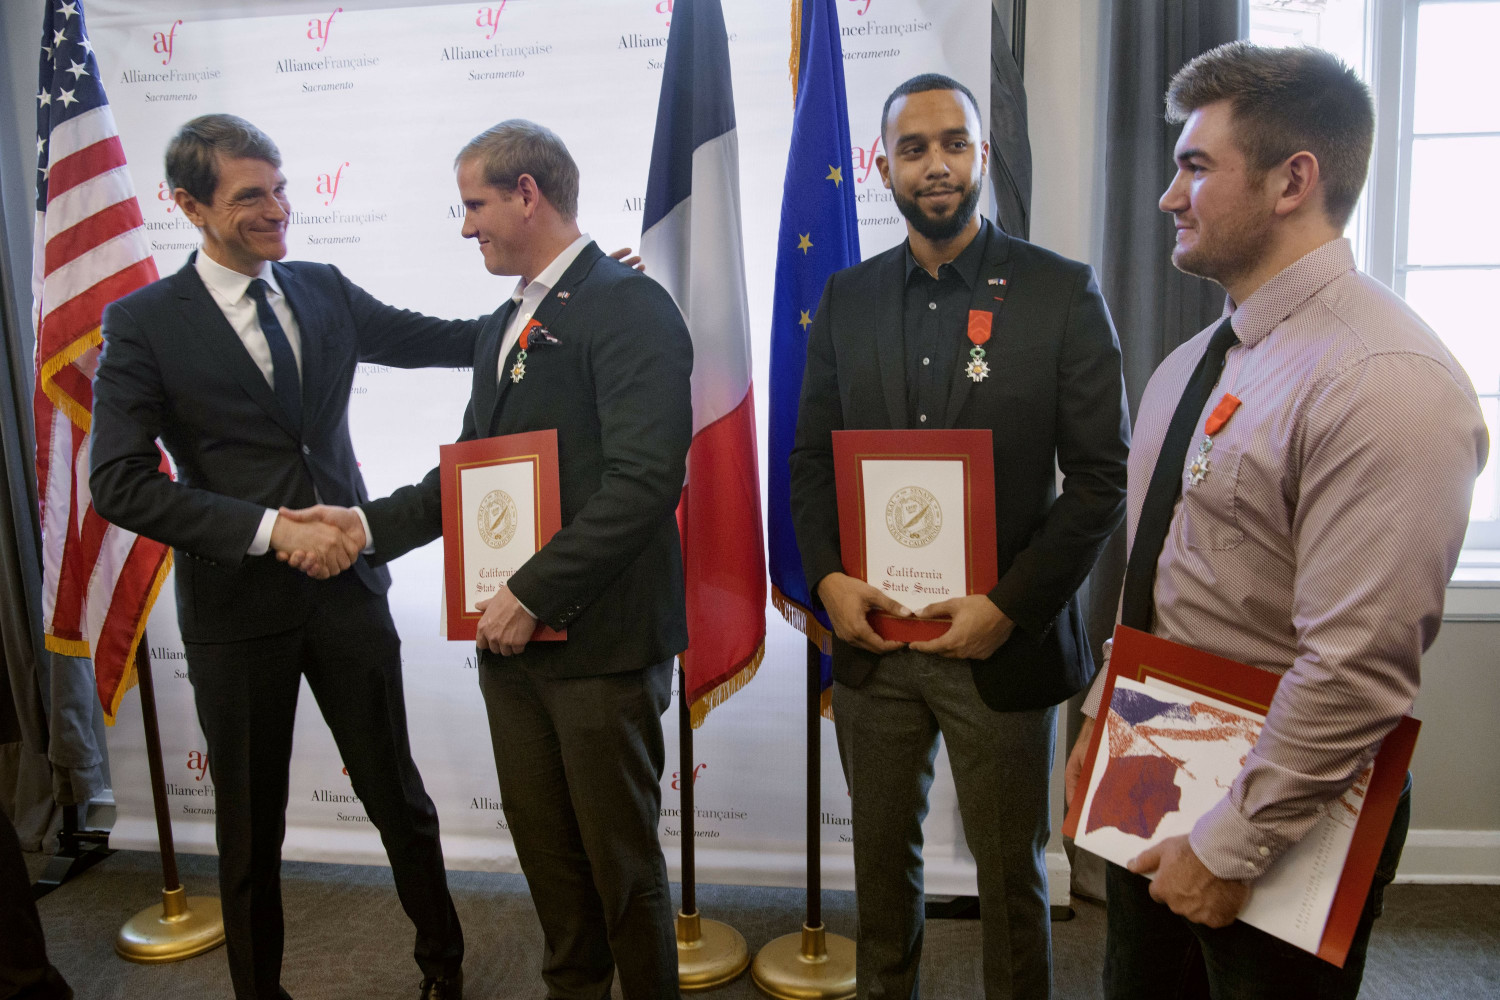 3 Men Granted French Citizenship for Thwarting Train Attack